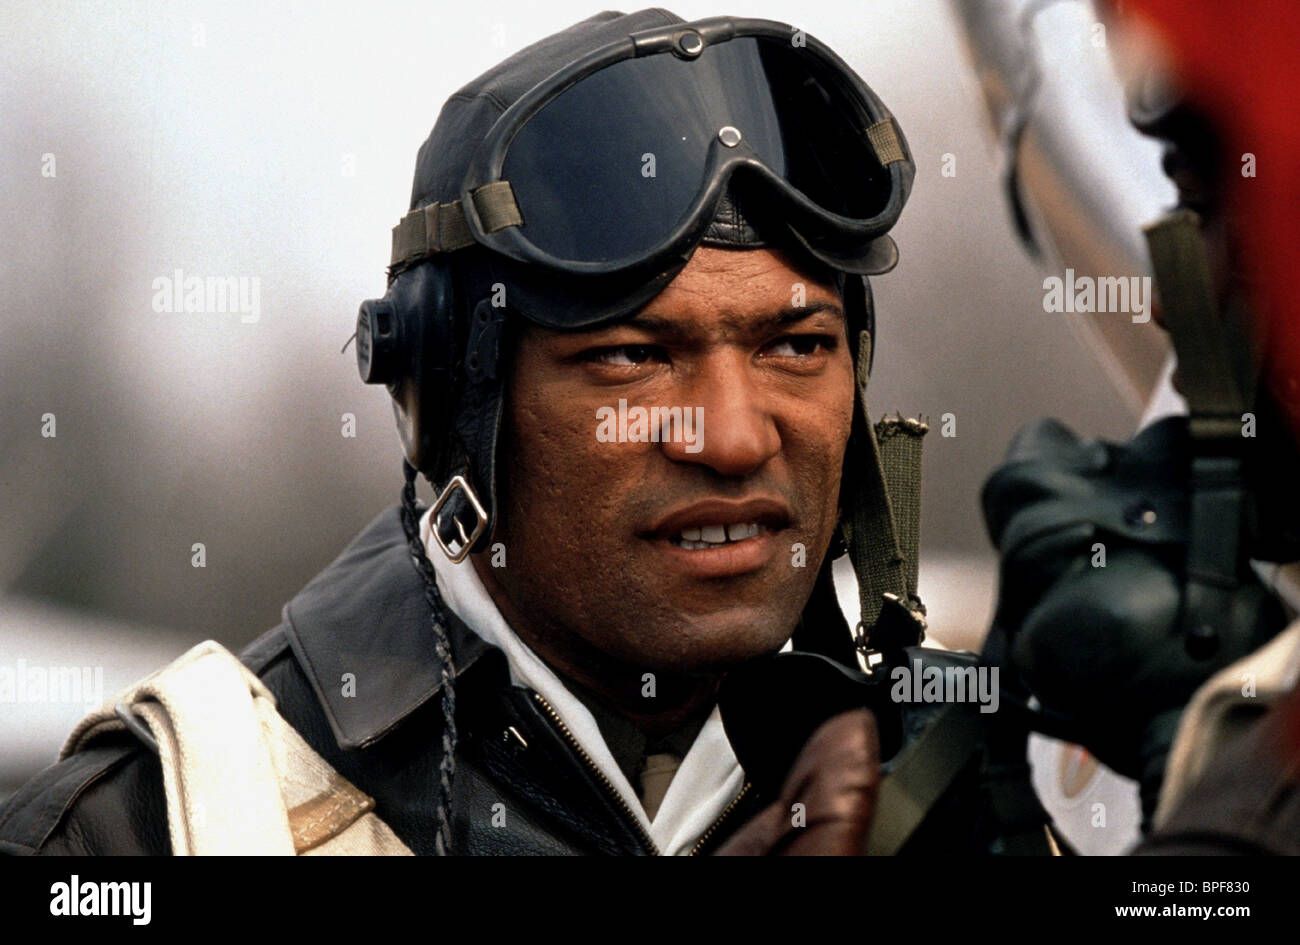 LAURENCE FISHBURNE THE TUSKEGEE AIRMEN (1995) - Stock Image